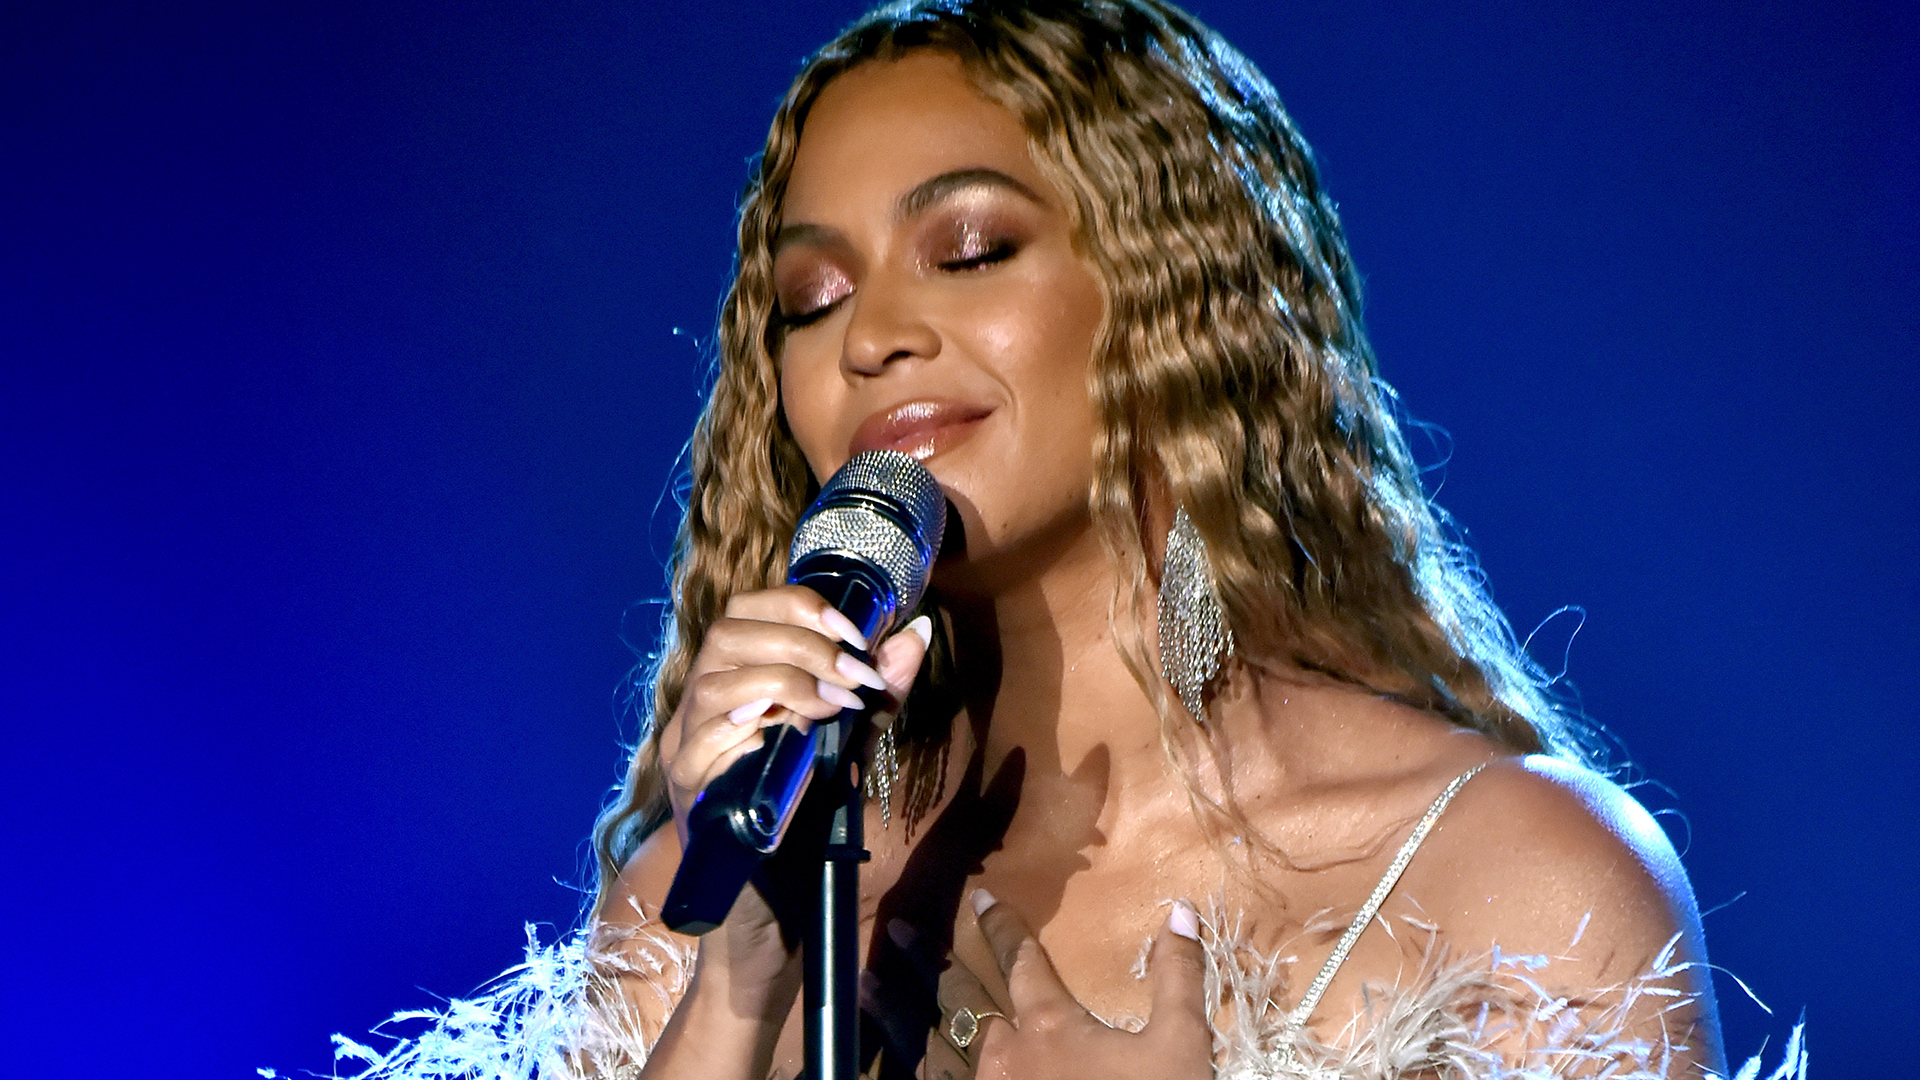 BEYONCÉ'S BEYGOOD TEAMS UP WITH MS.TINA KNOWLES LAWSON TO SUPPORT COVID-19 MOBILE TESTING RELIEF IN HOUSTON